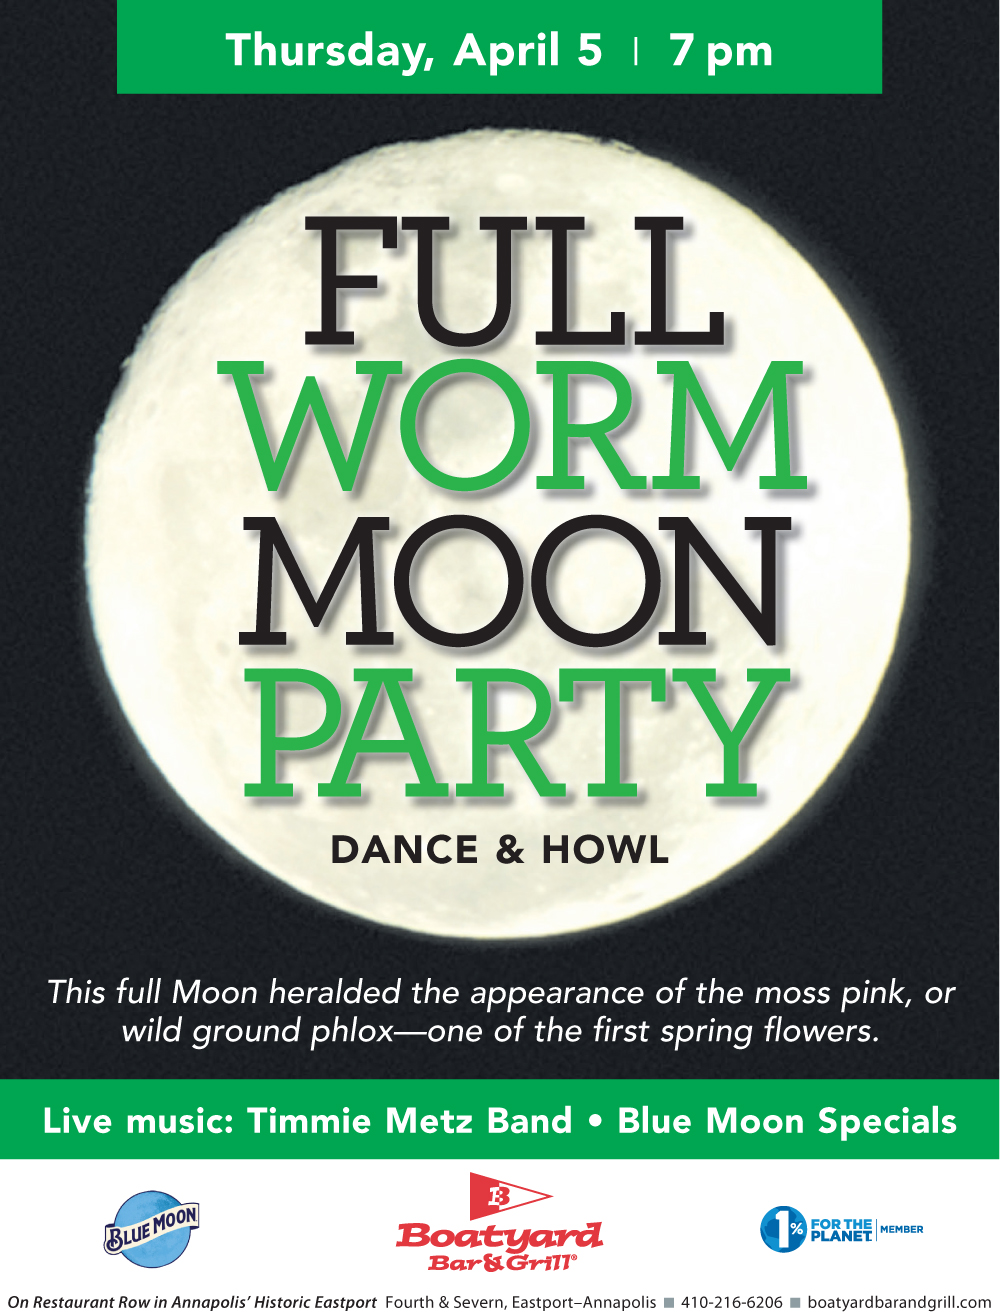 Full Worm Moon Party April